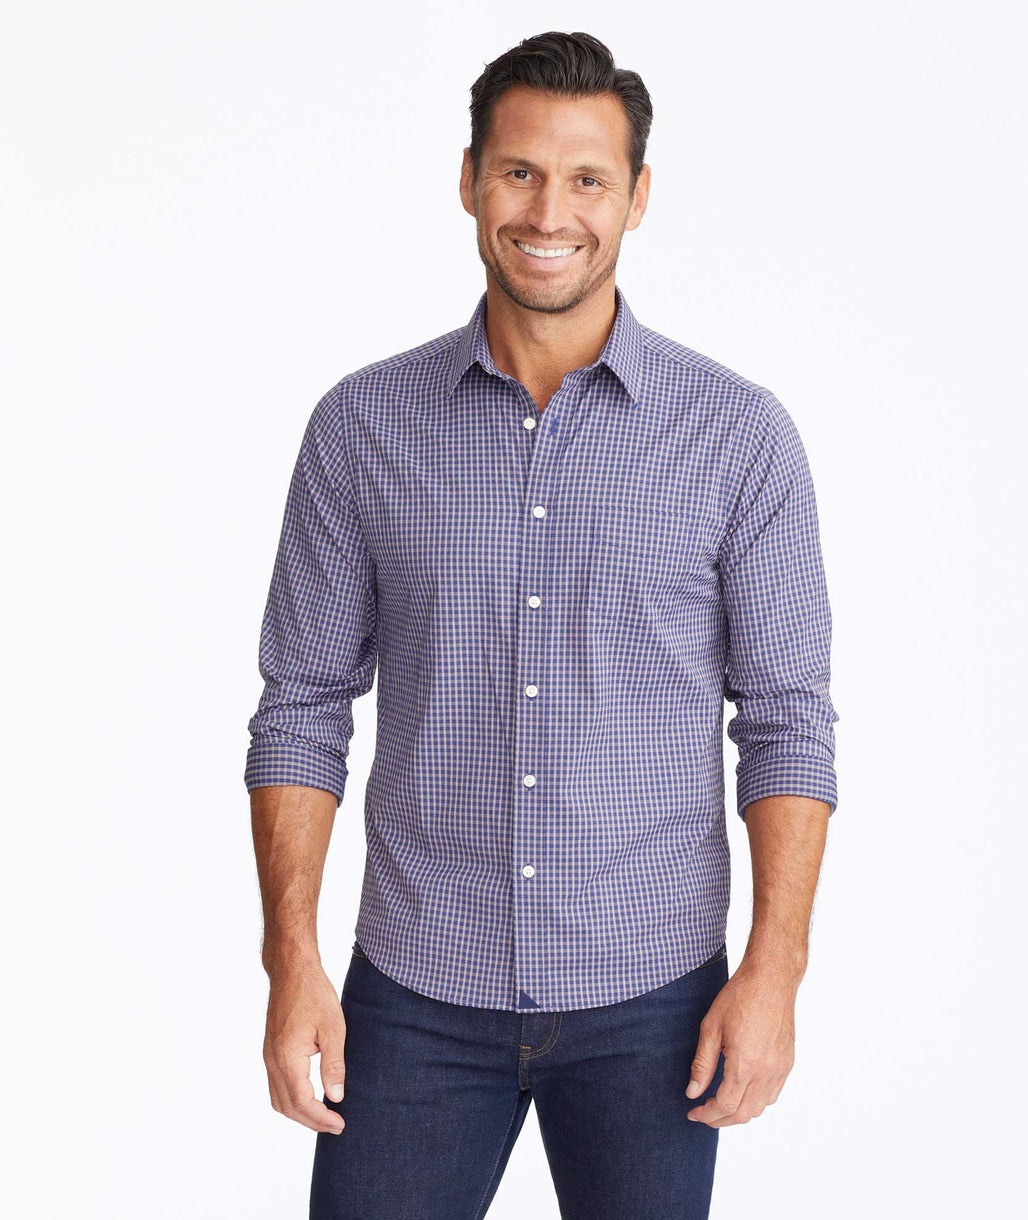 Model wearing a Navy Wrinkle-Free Performance Larkin Shirt